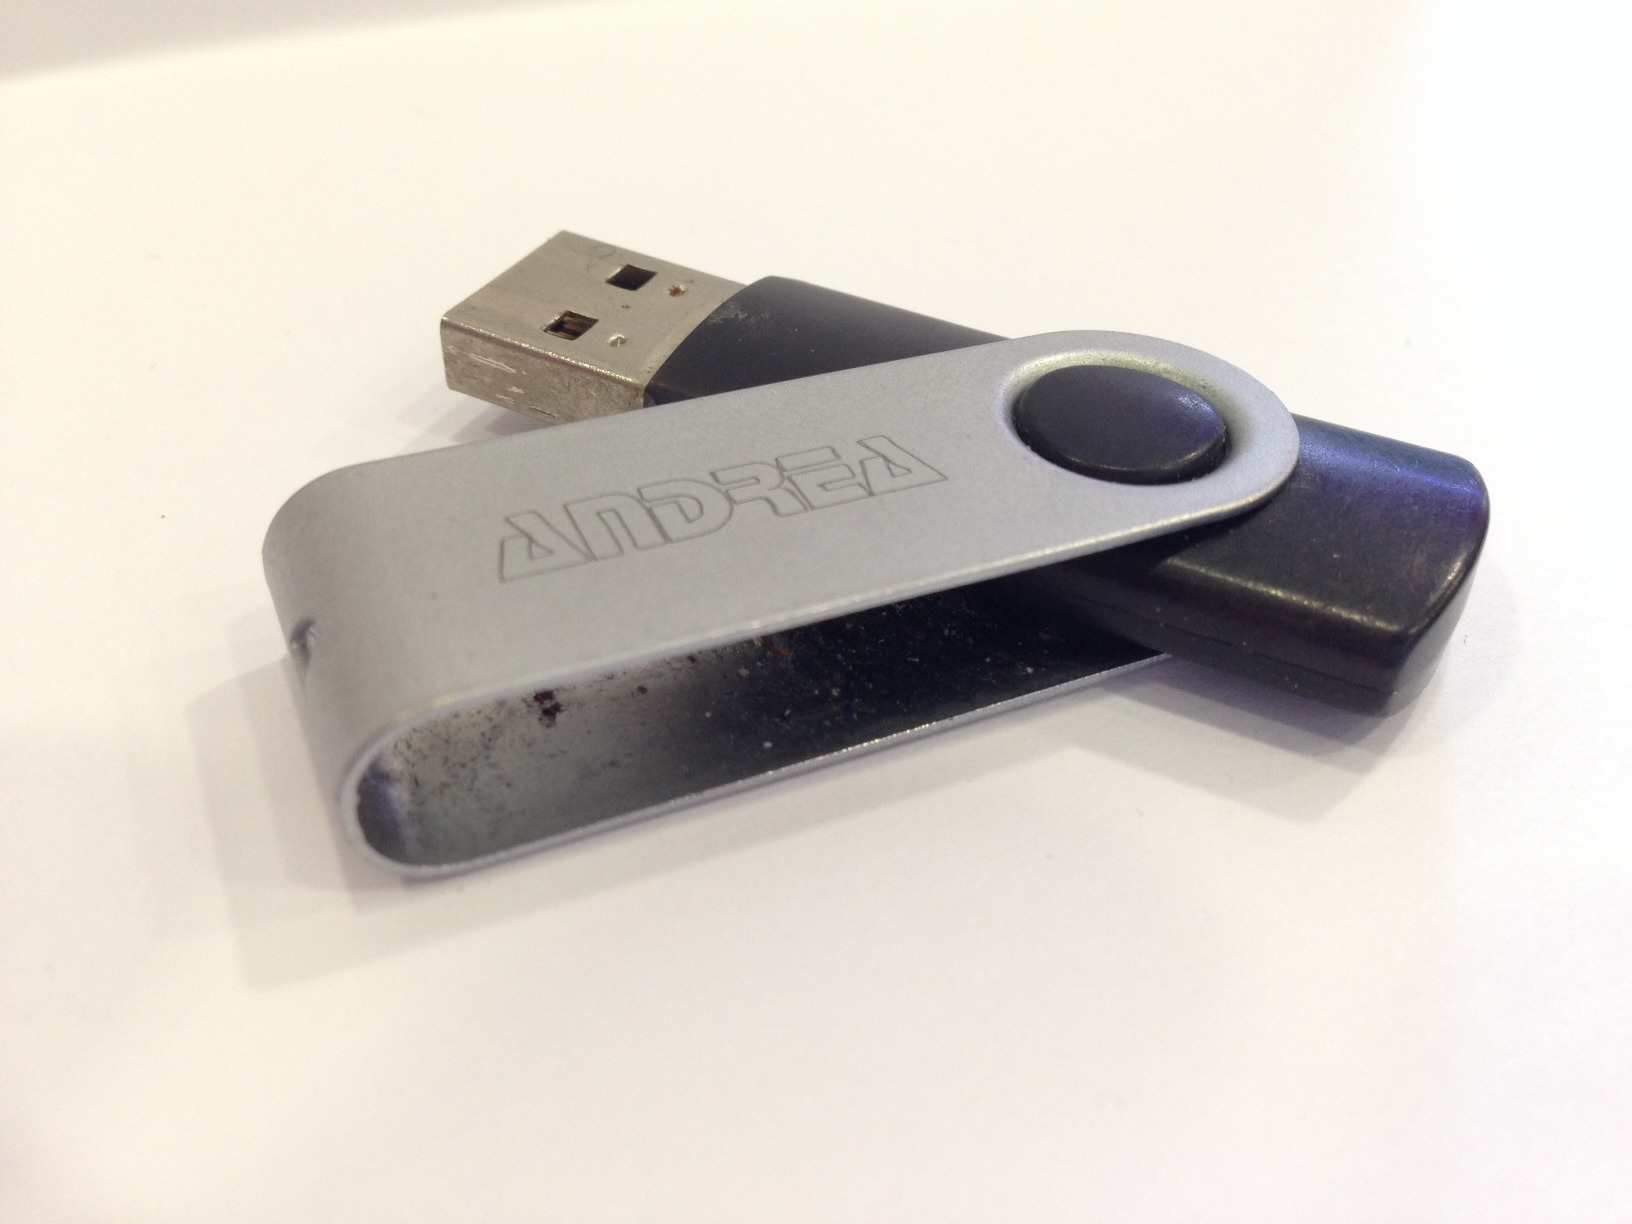 Memoria USB con incisione